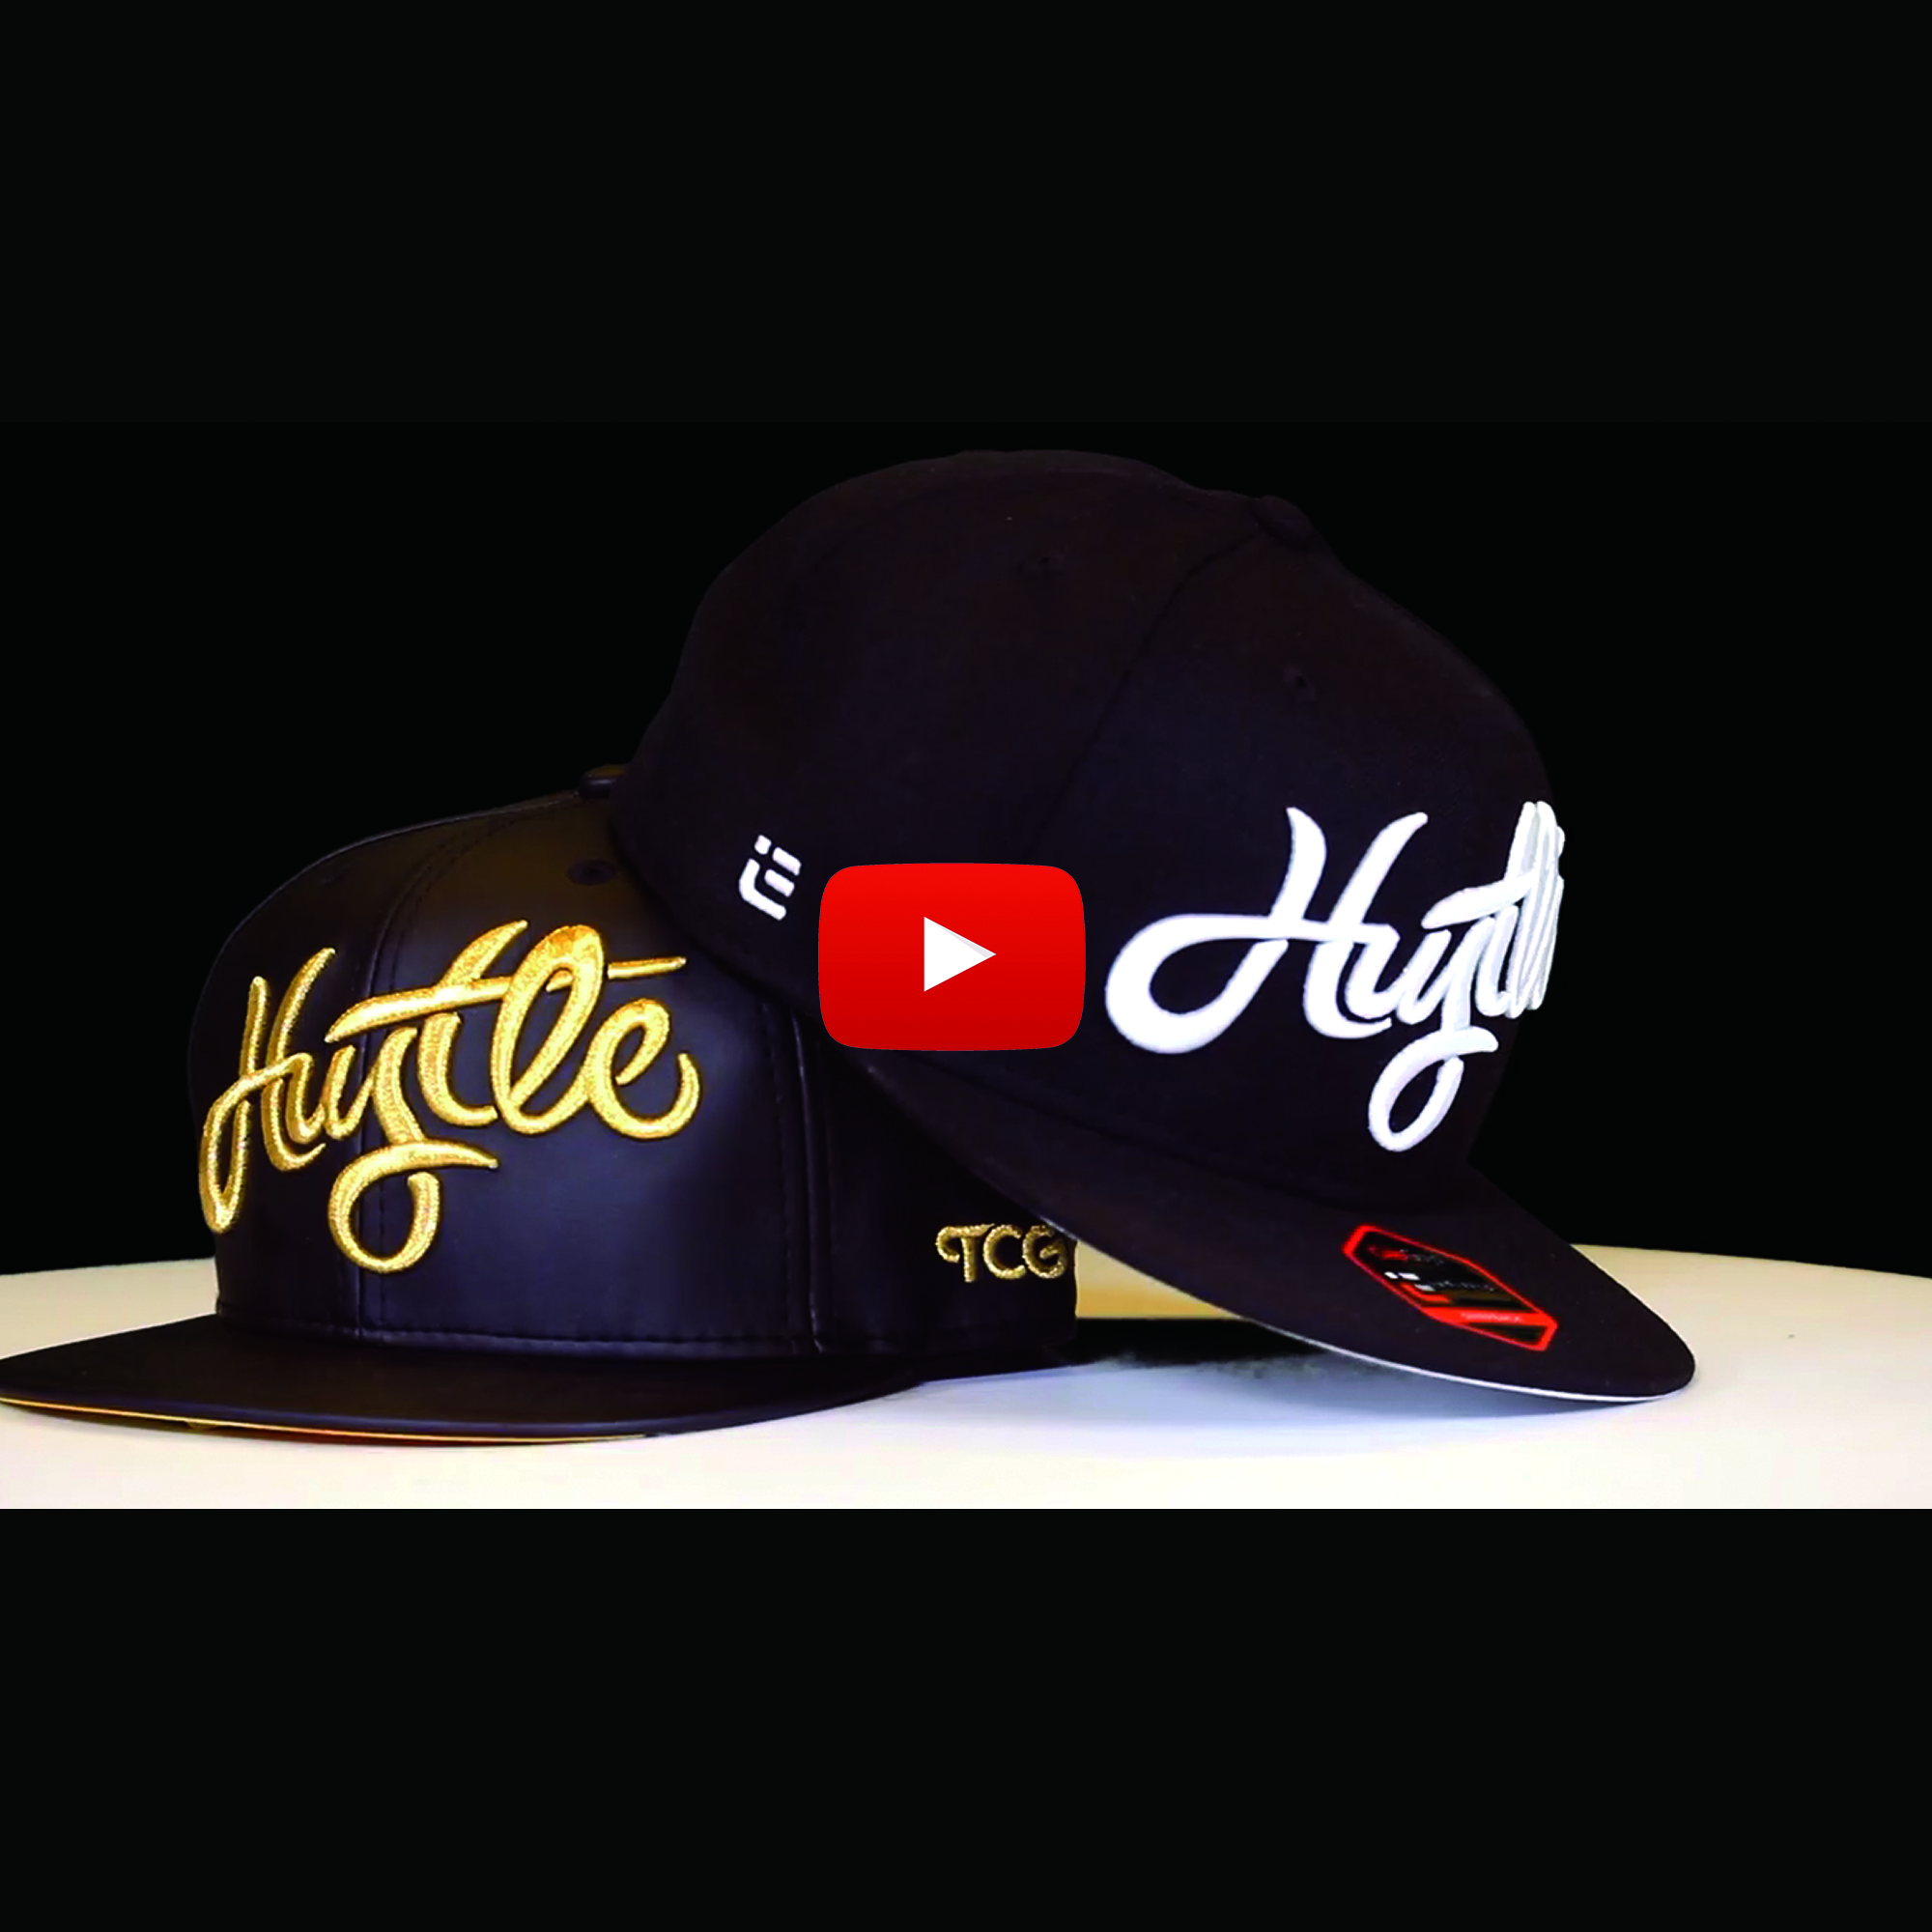 The Cap Guys - Inspired Exclusives - Hustle T.O. - Commercial Teaser